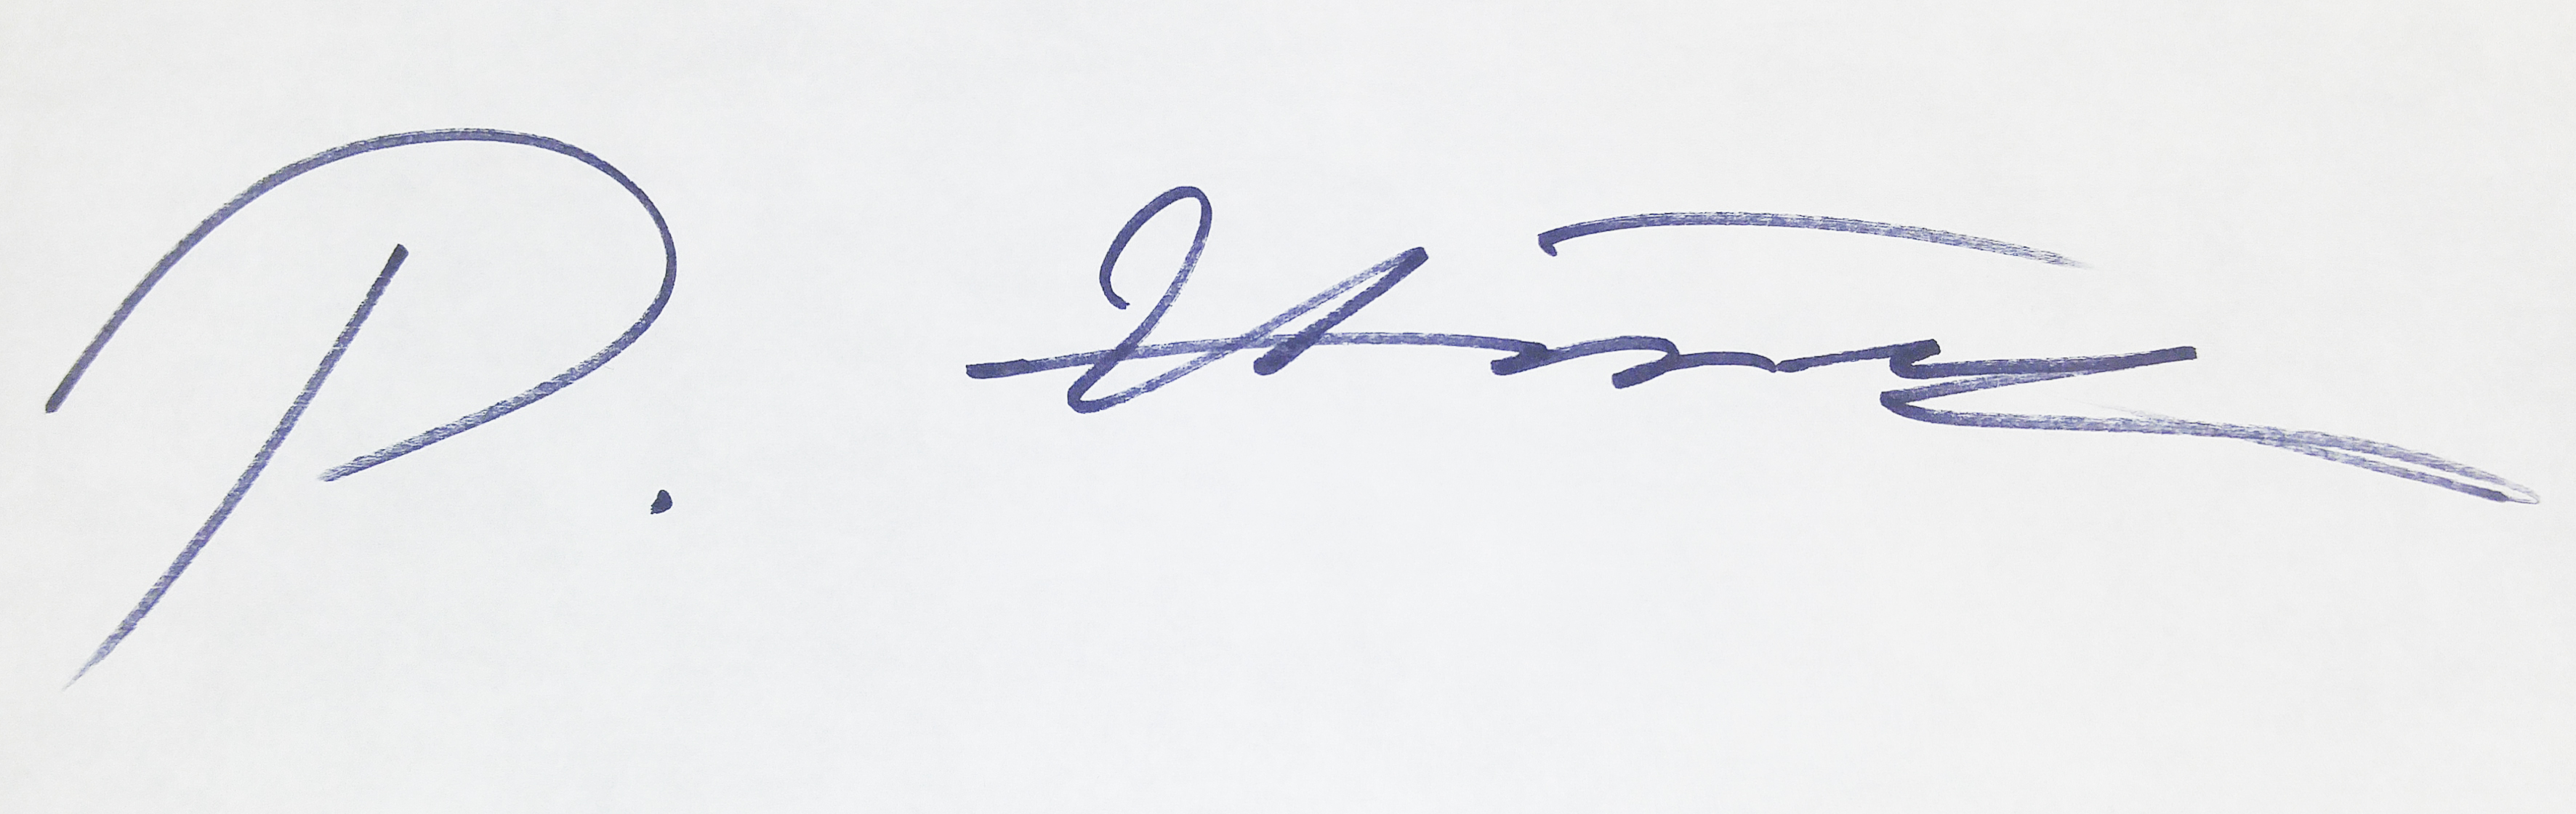 peggy H. Lee Signature